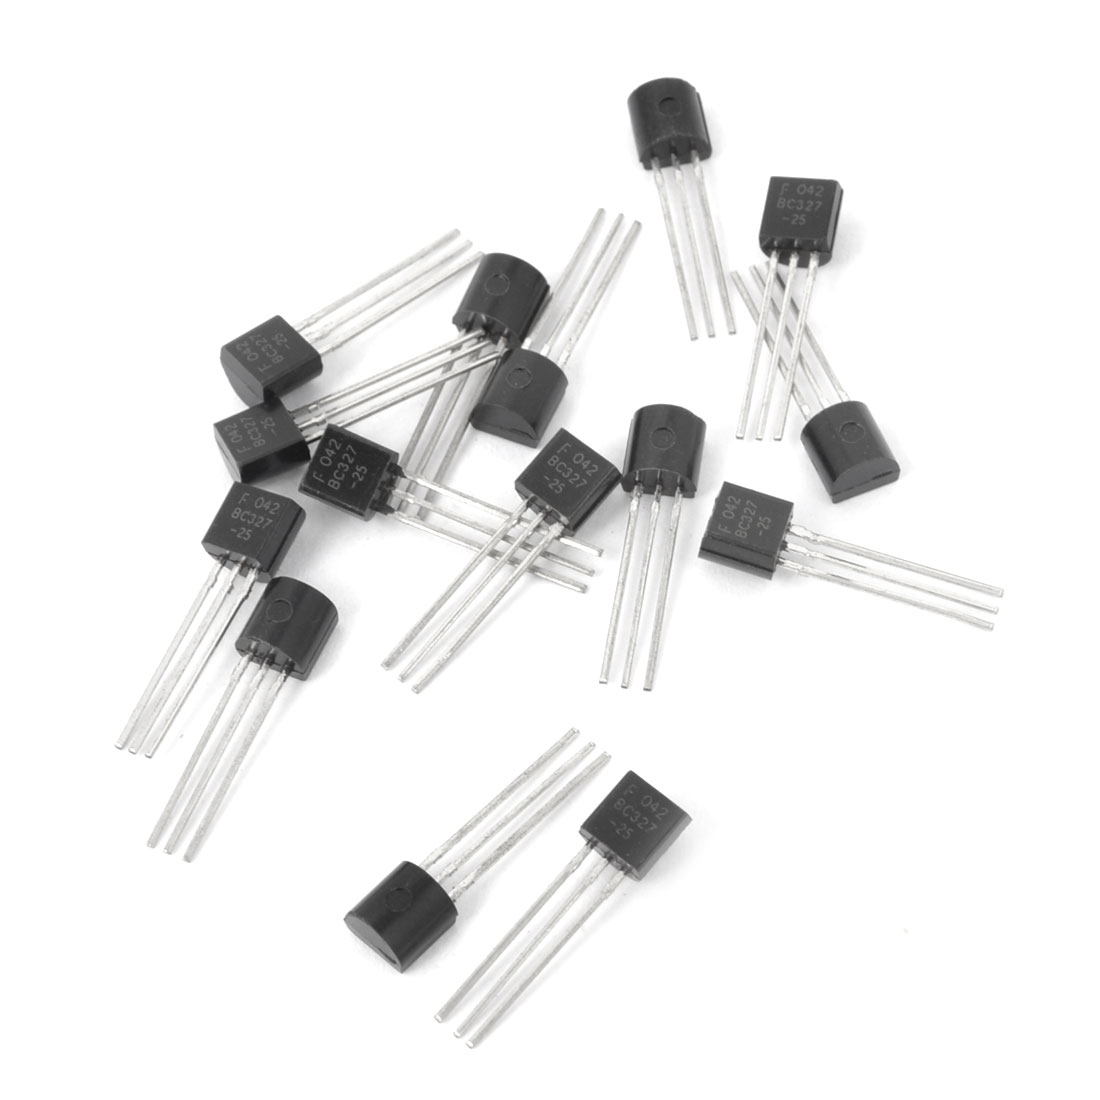 15Pcs TO-92 BC327-25 Tin Leads Small Single PNP Silicon Transistors 50V 0.5A 0.625W